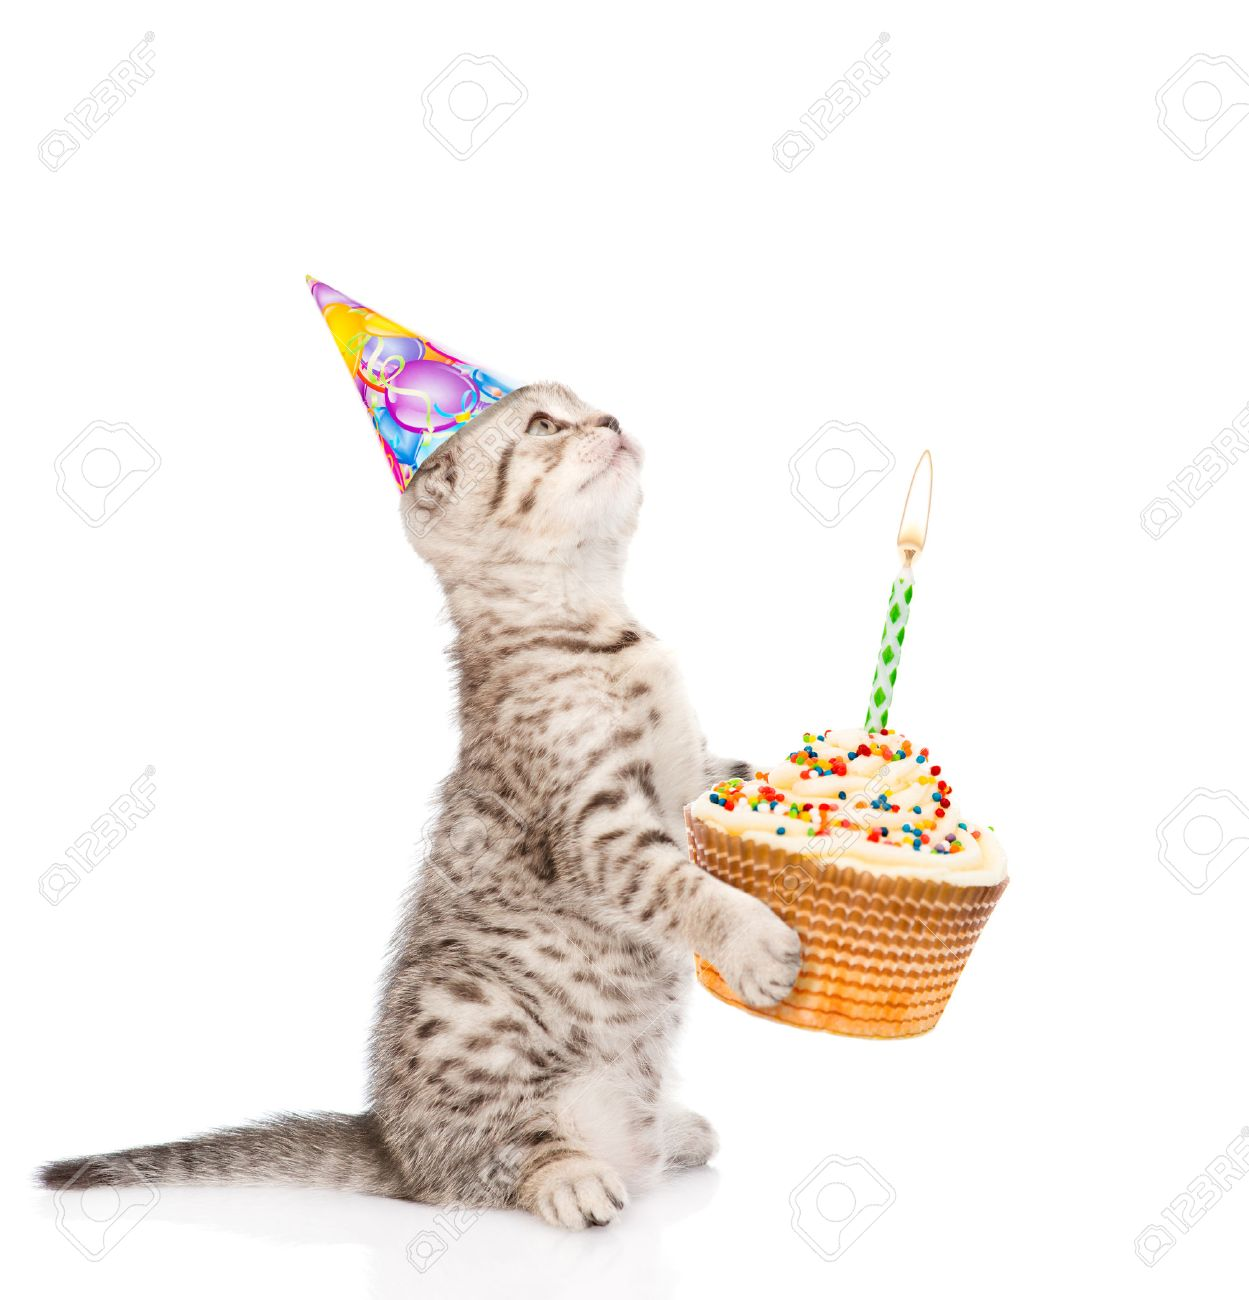 Tabby Cat In Birthday Hat Holding Cake With Candles Isolated